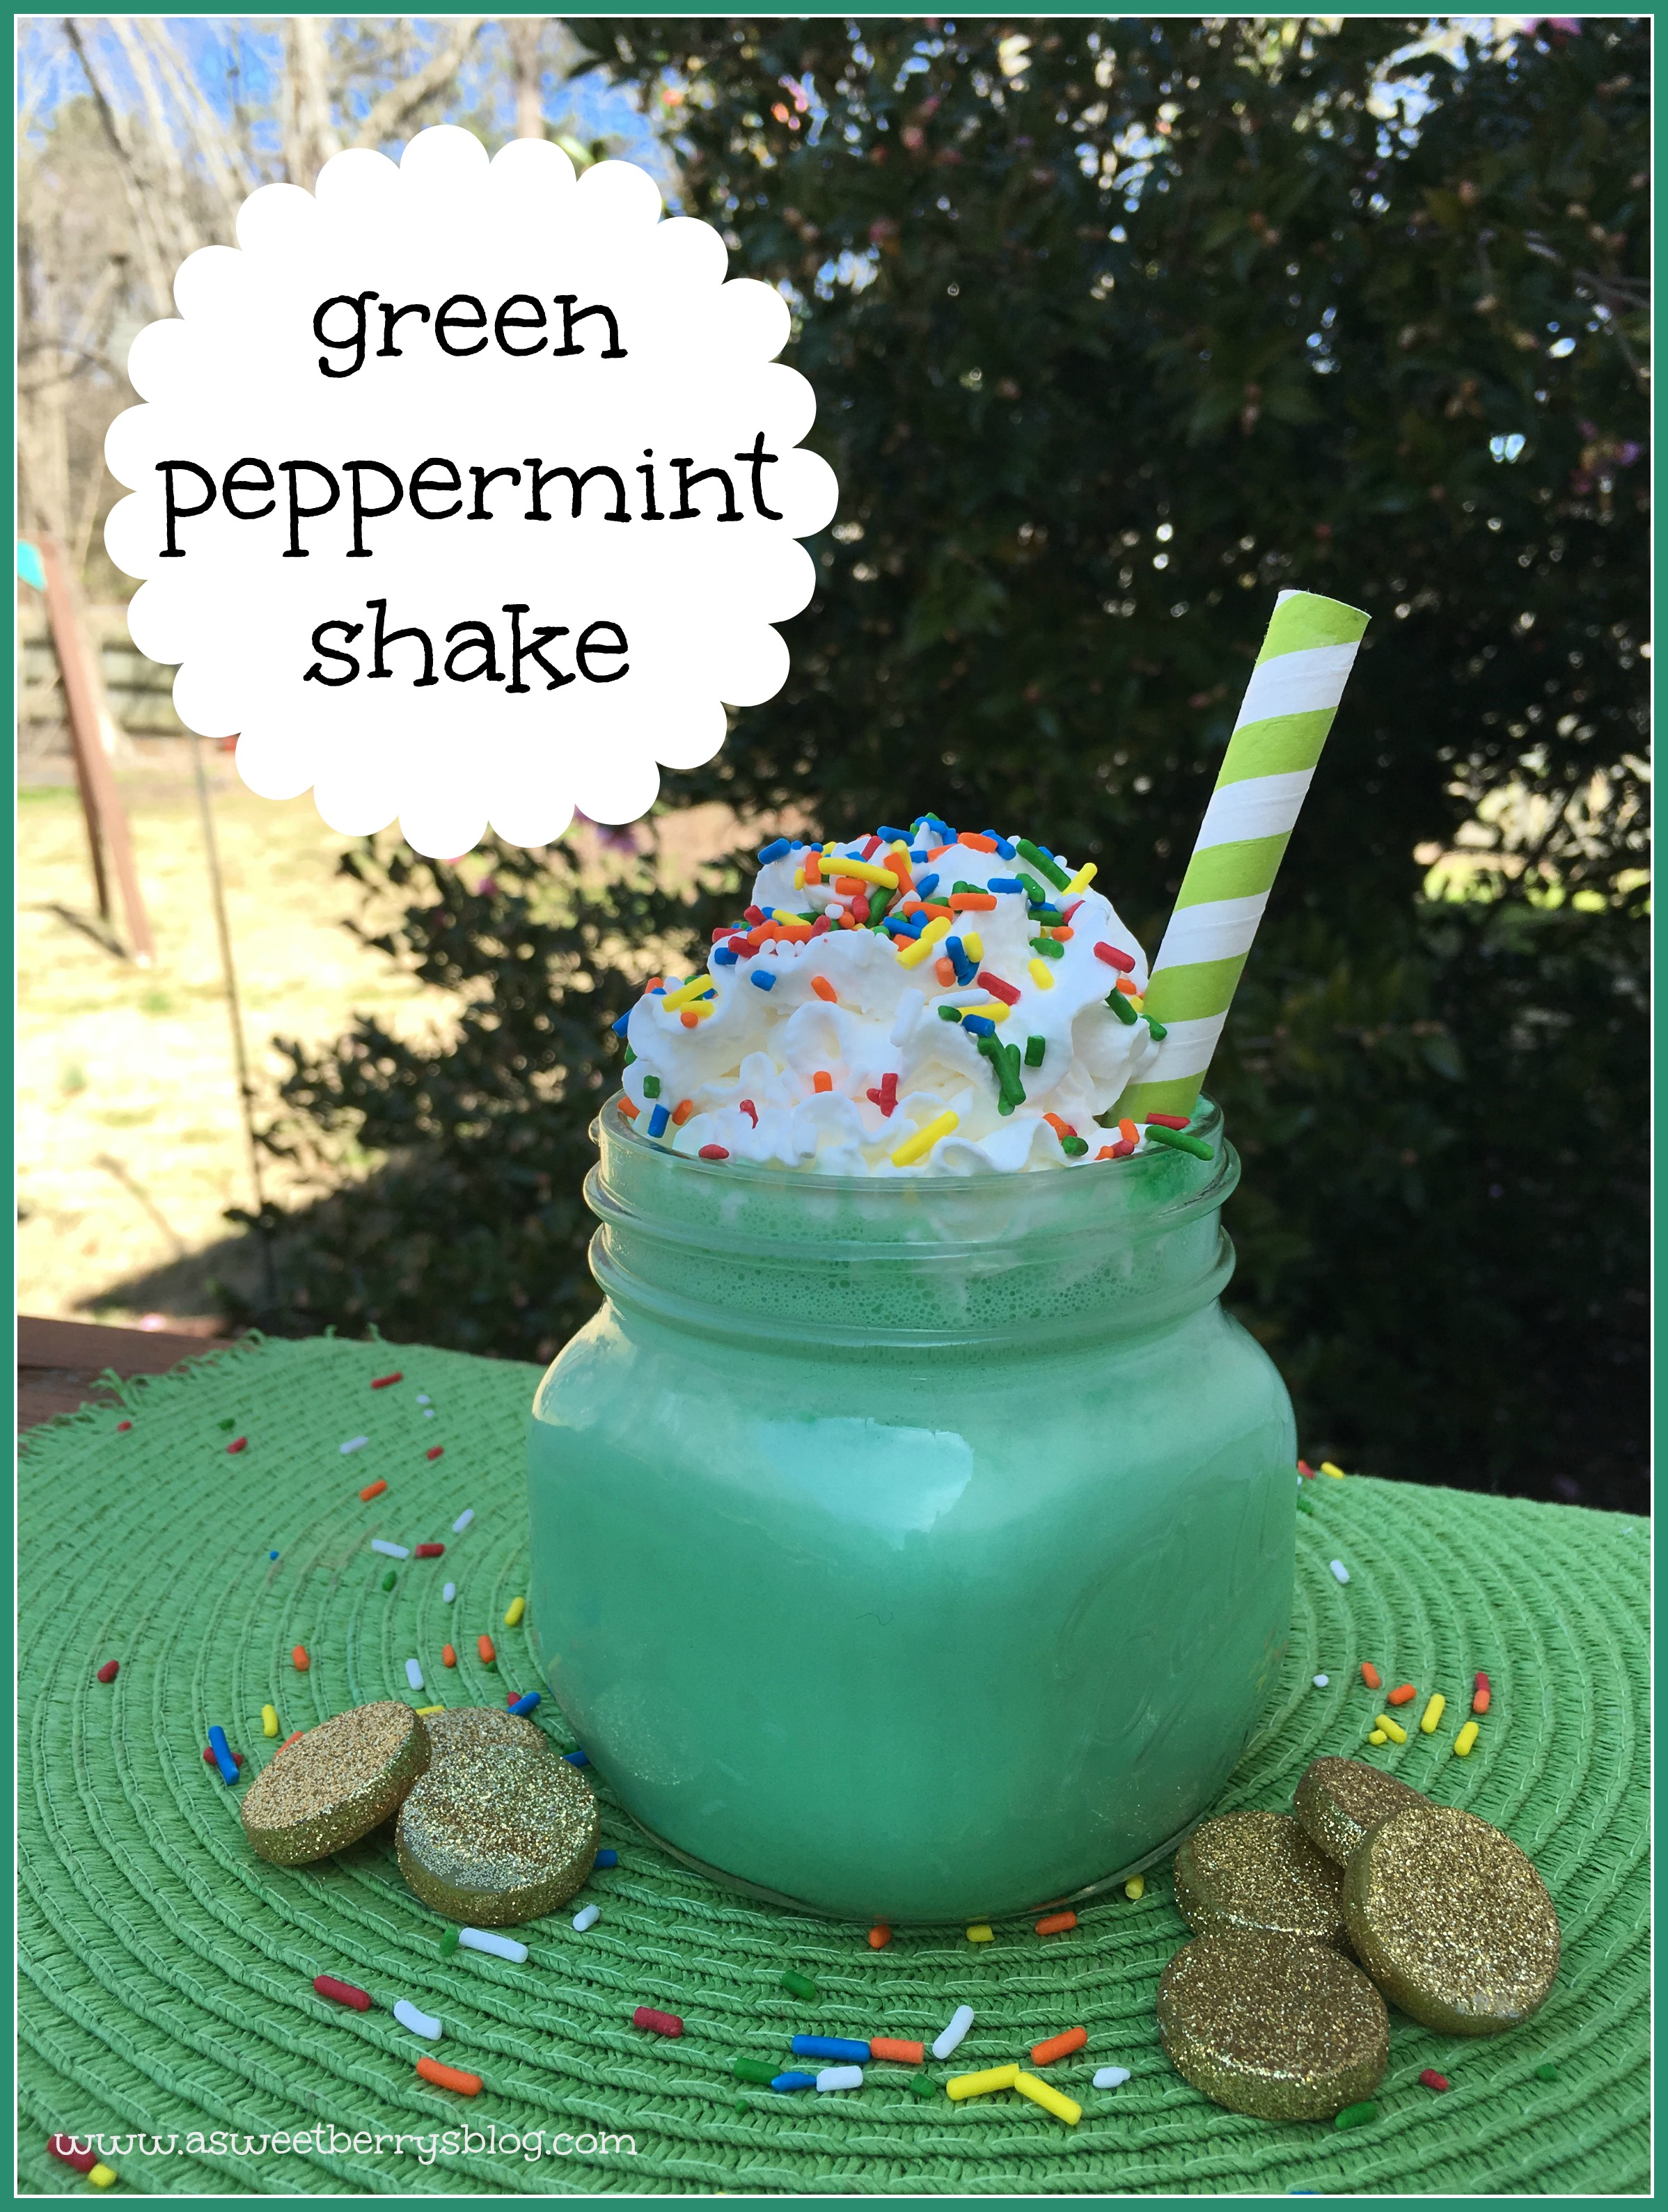 Green Peppermint Shake